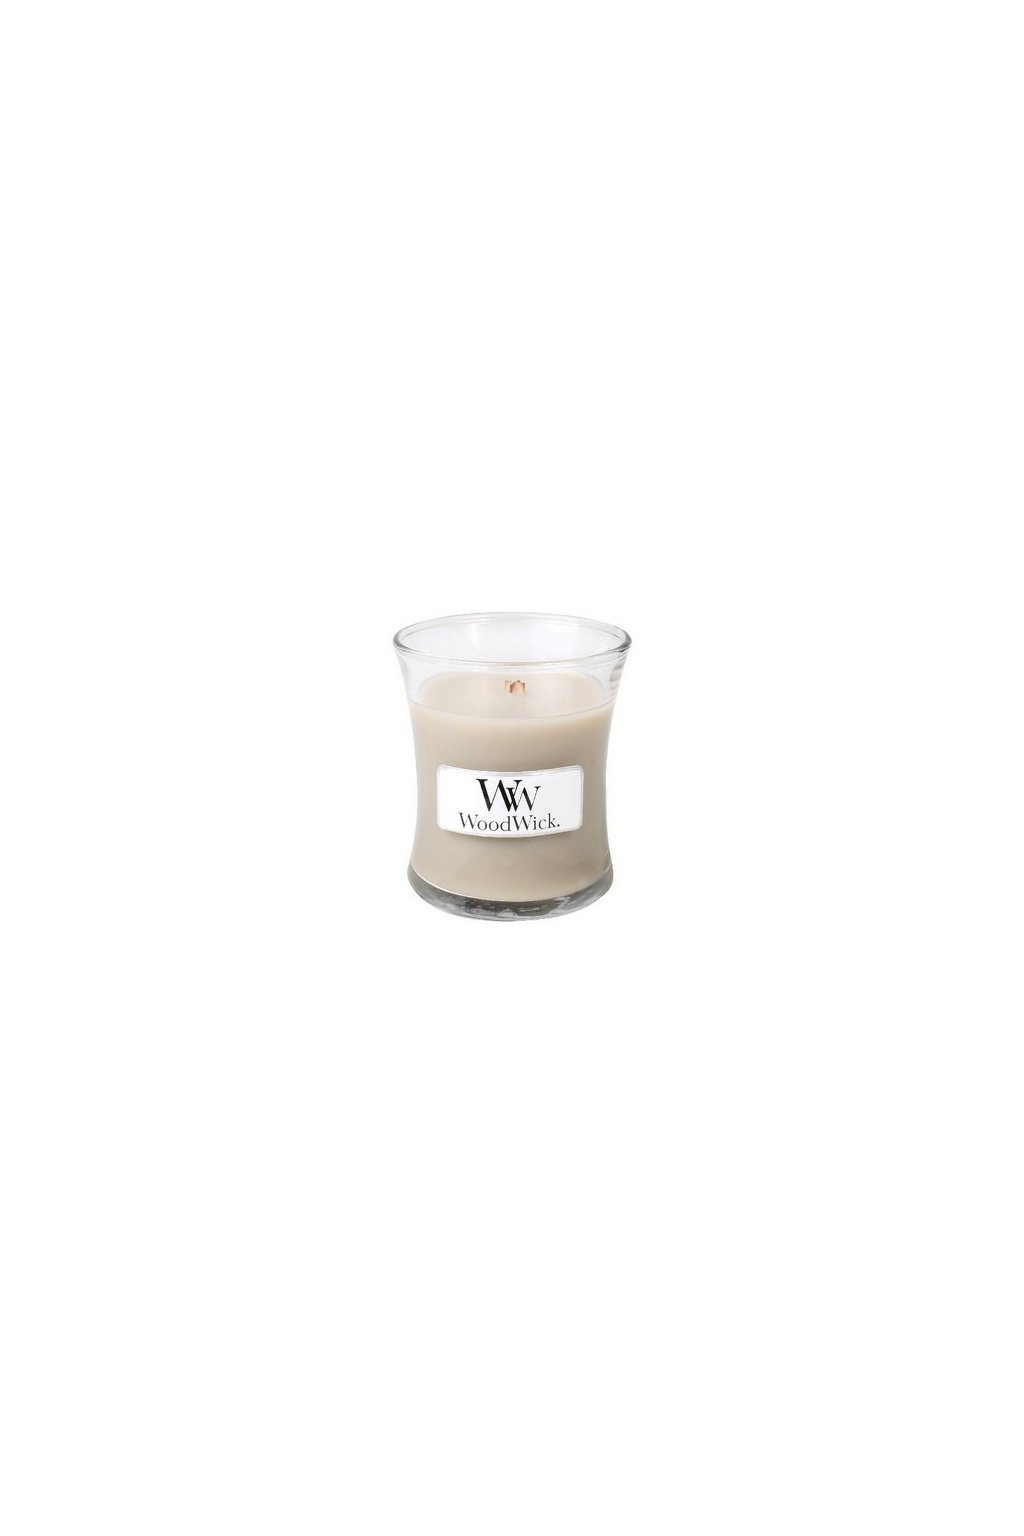 WoodWick Wood Smoke váza malá 85g